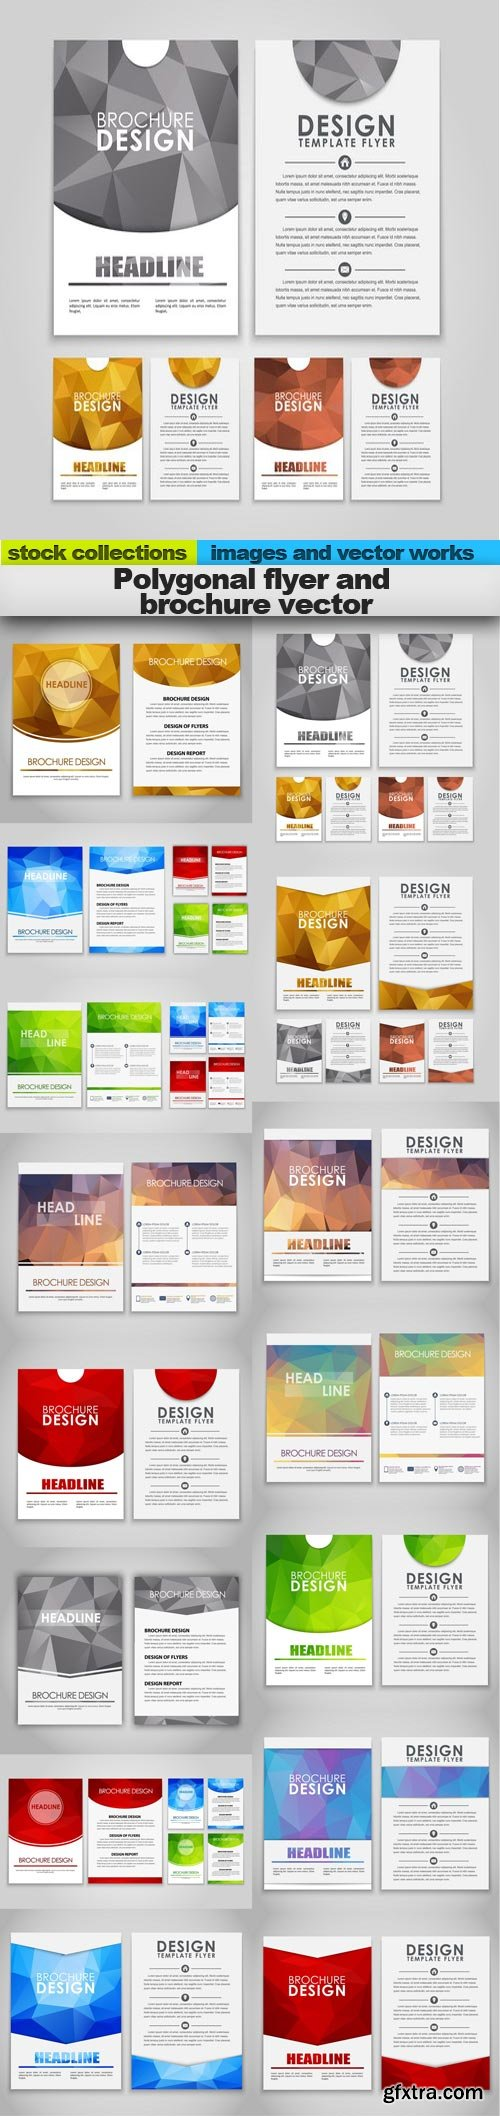 Polygonal flyer and brochure vector, 15 x EPS